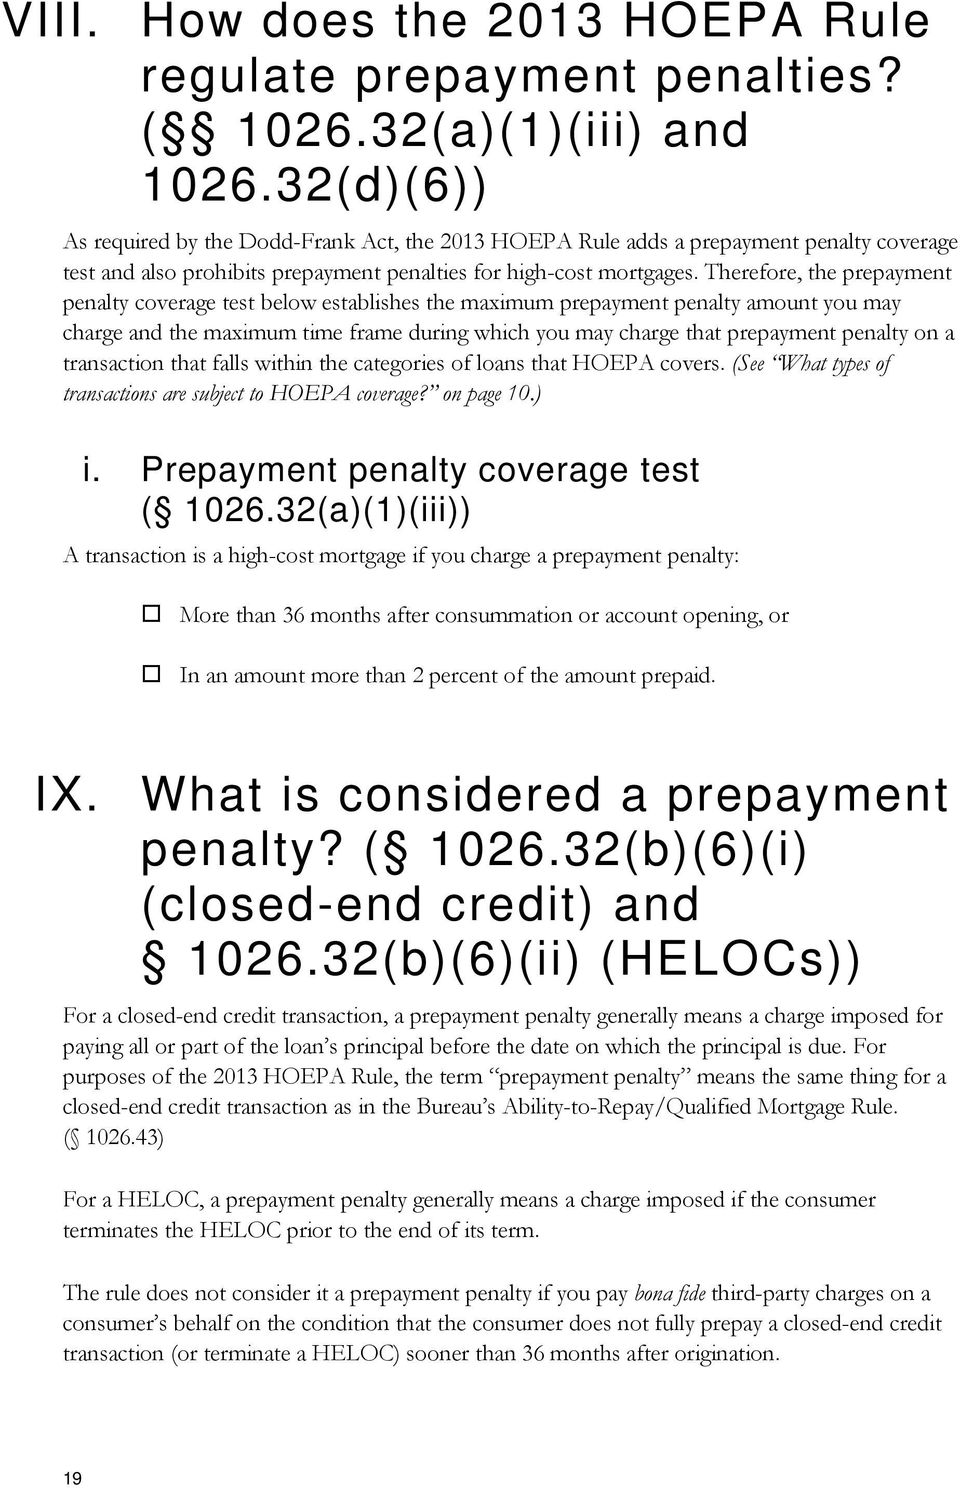 Therefore, the prepayment penalty coverage test below establishes the maximum prepayment penalty amount you may charge and the maximum time frame during which you may charge that prepayment penalty